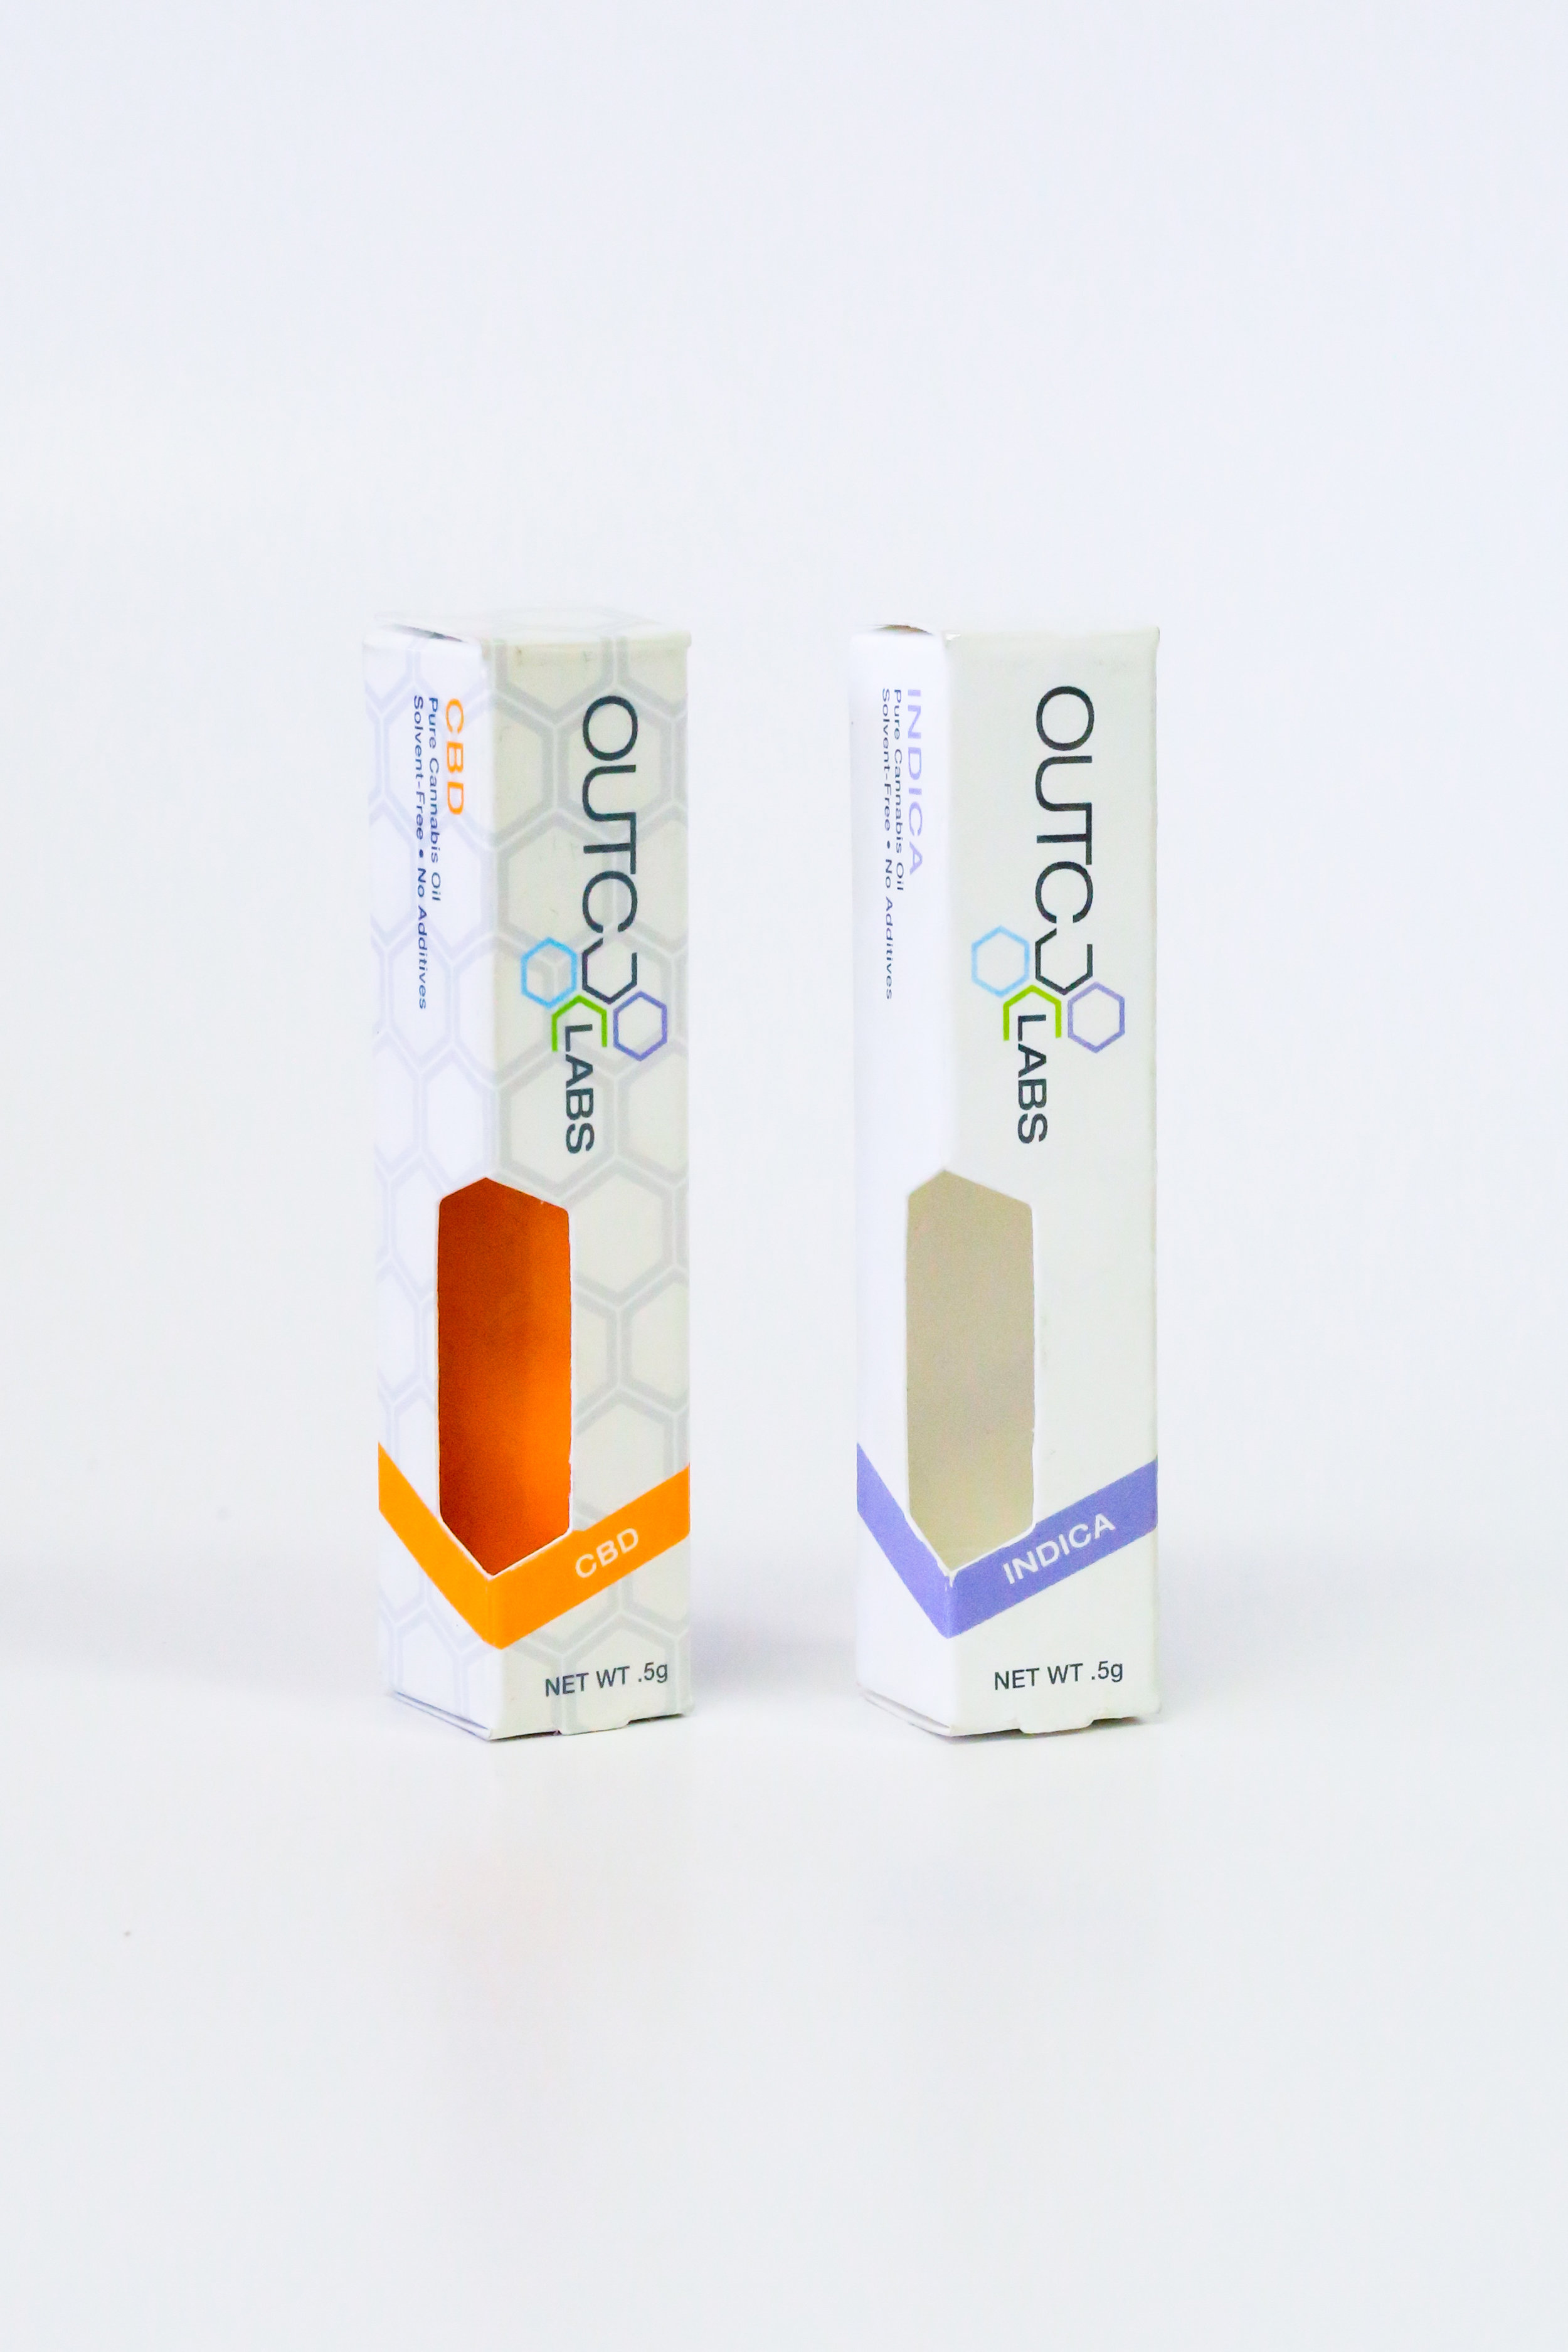 Outc Labs Vaporizer Cannabis Packaging